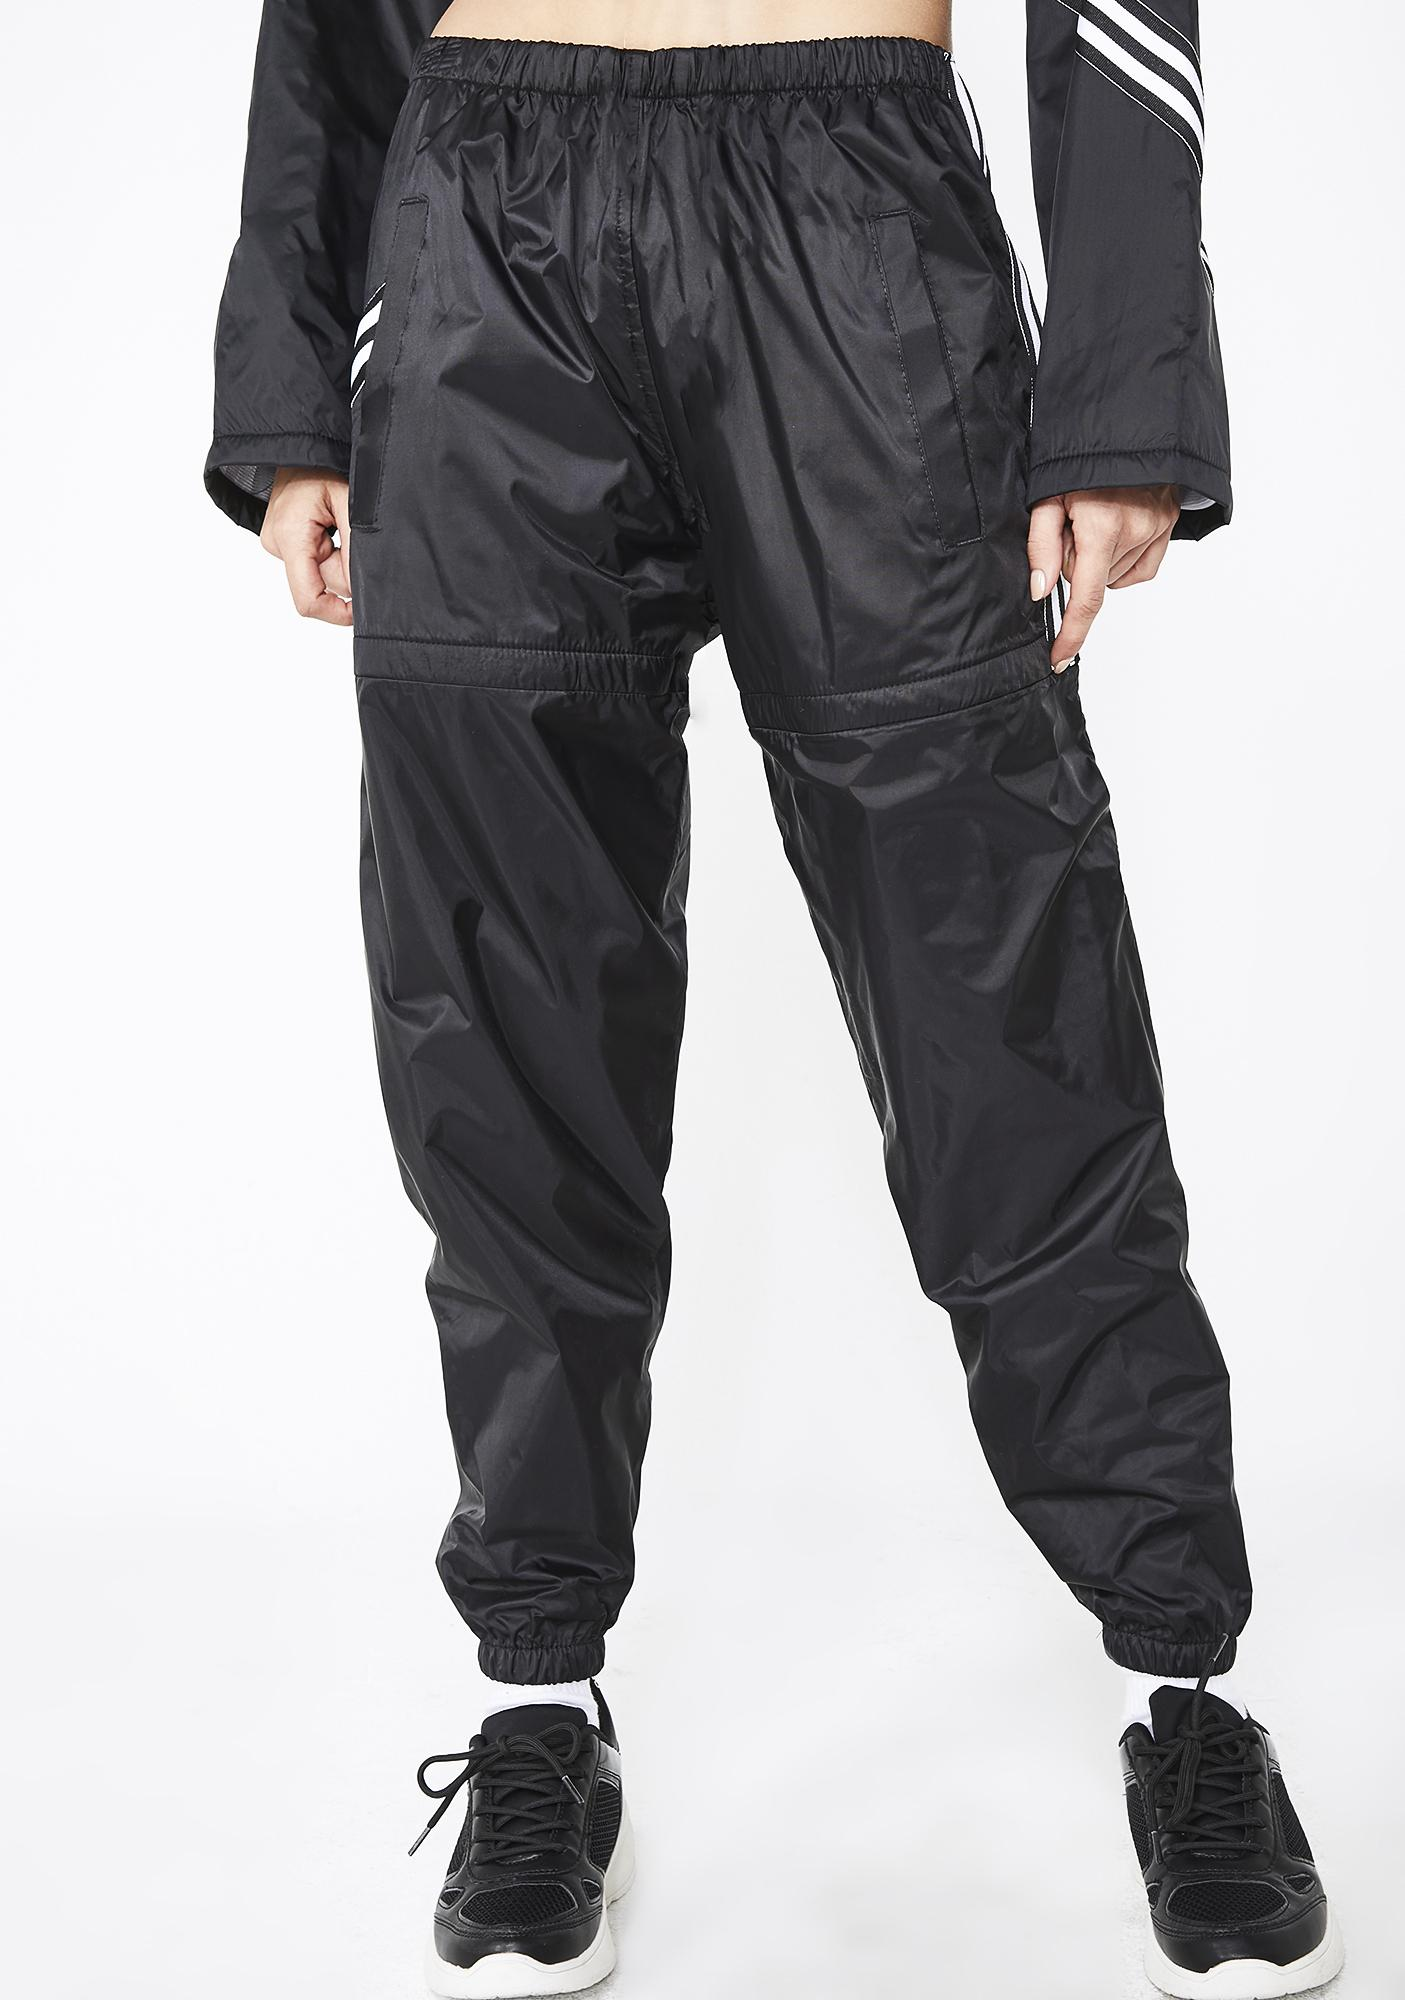 Rojas Night Chaotic Track Pants